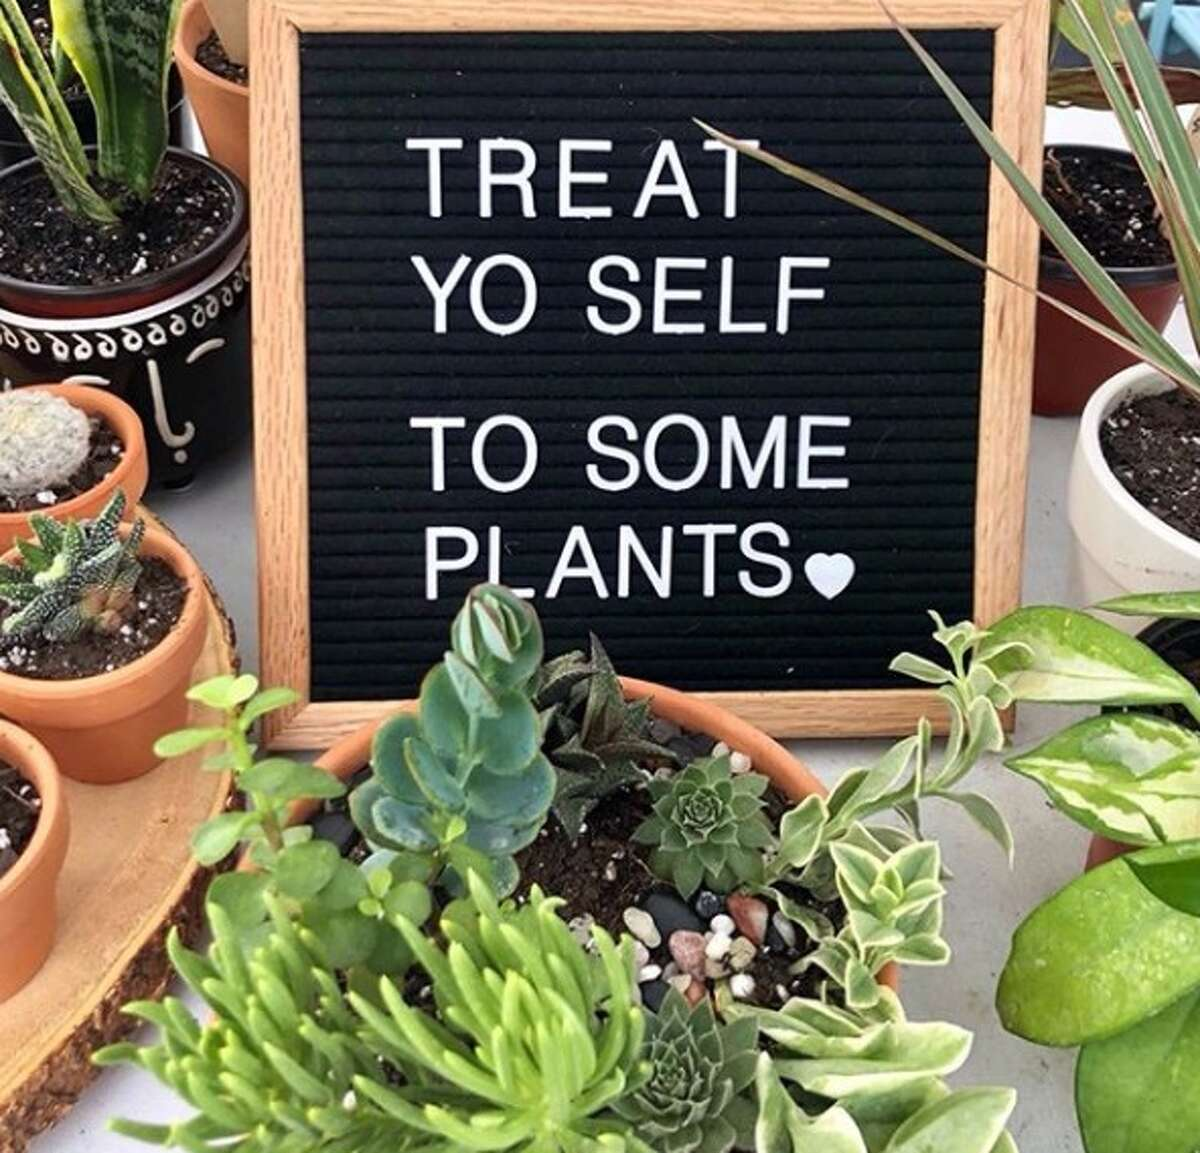 Plant Shoppe, which usually operates as a weekend pop-up business at farmers markets, is offering delivery options every weekend so people can reconnect with the outdoors and get their